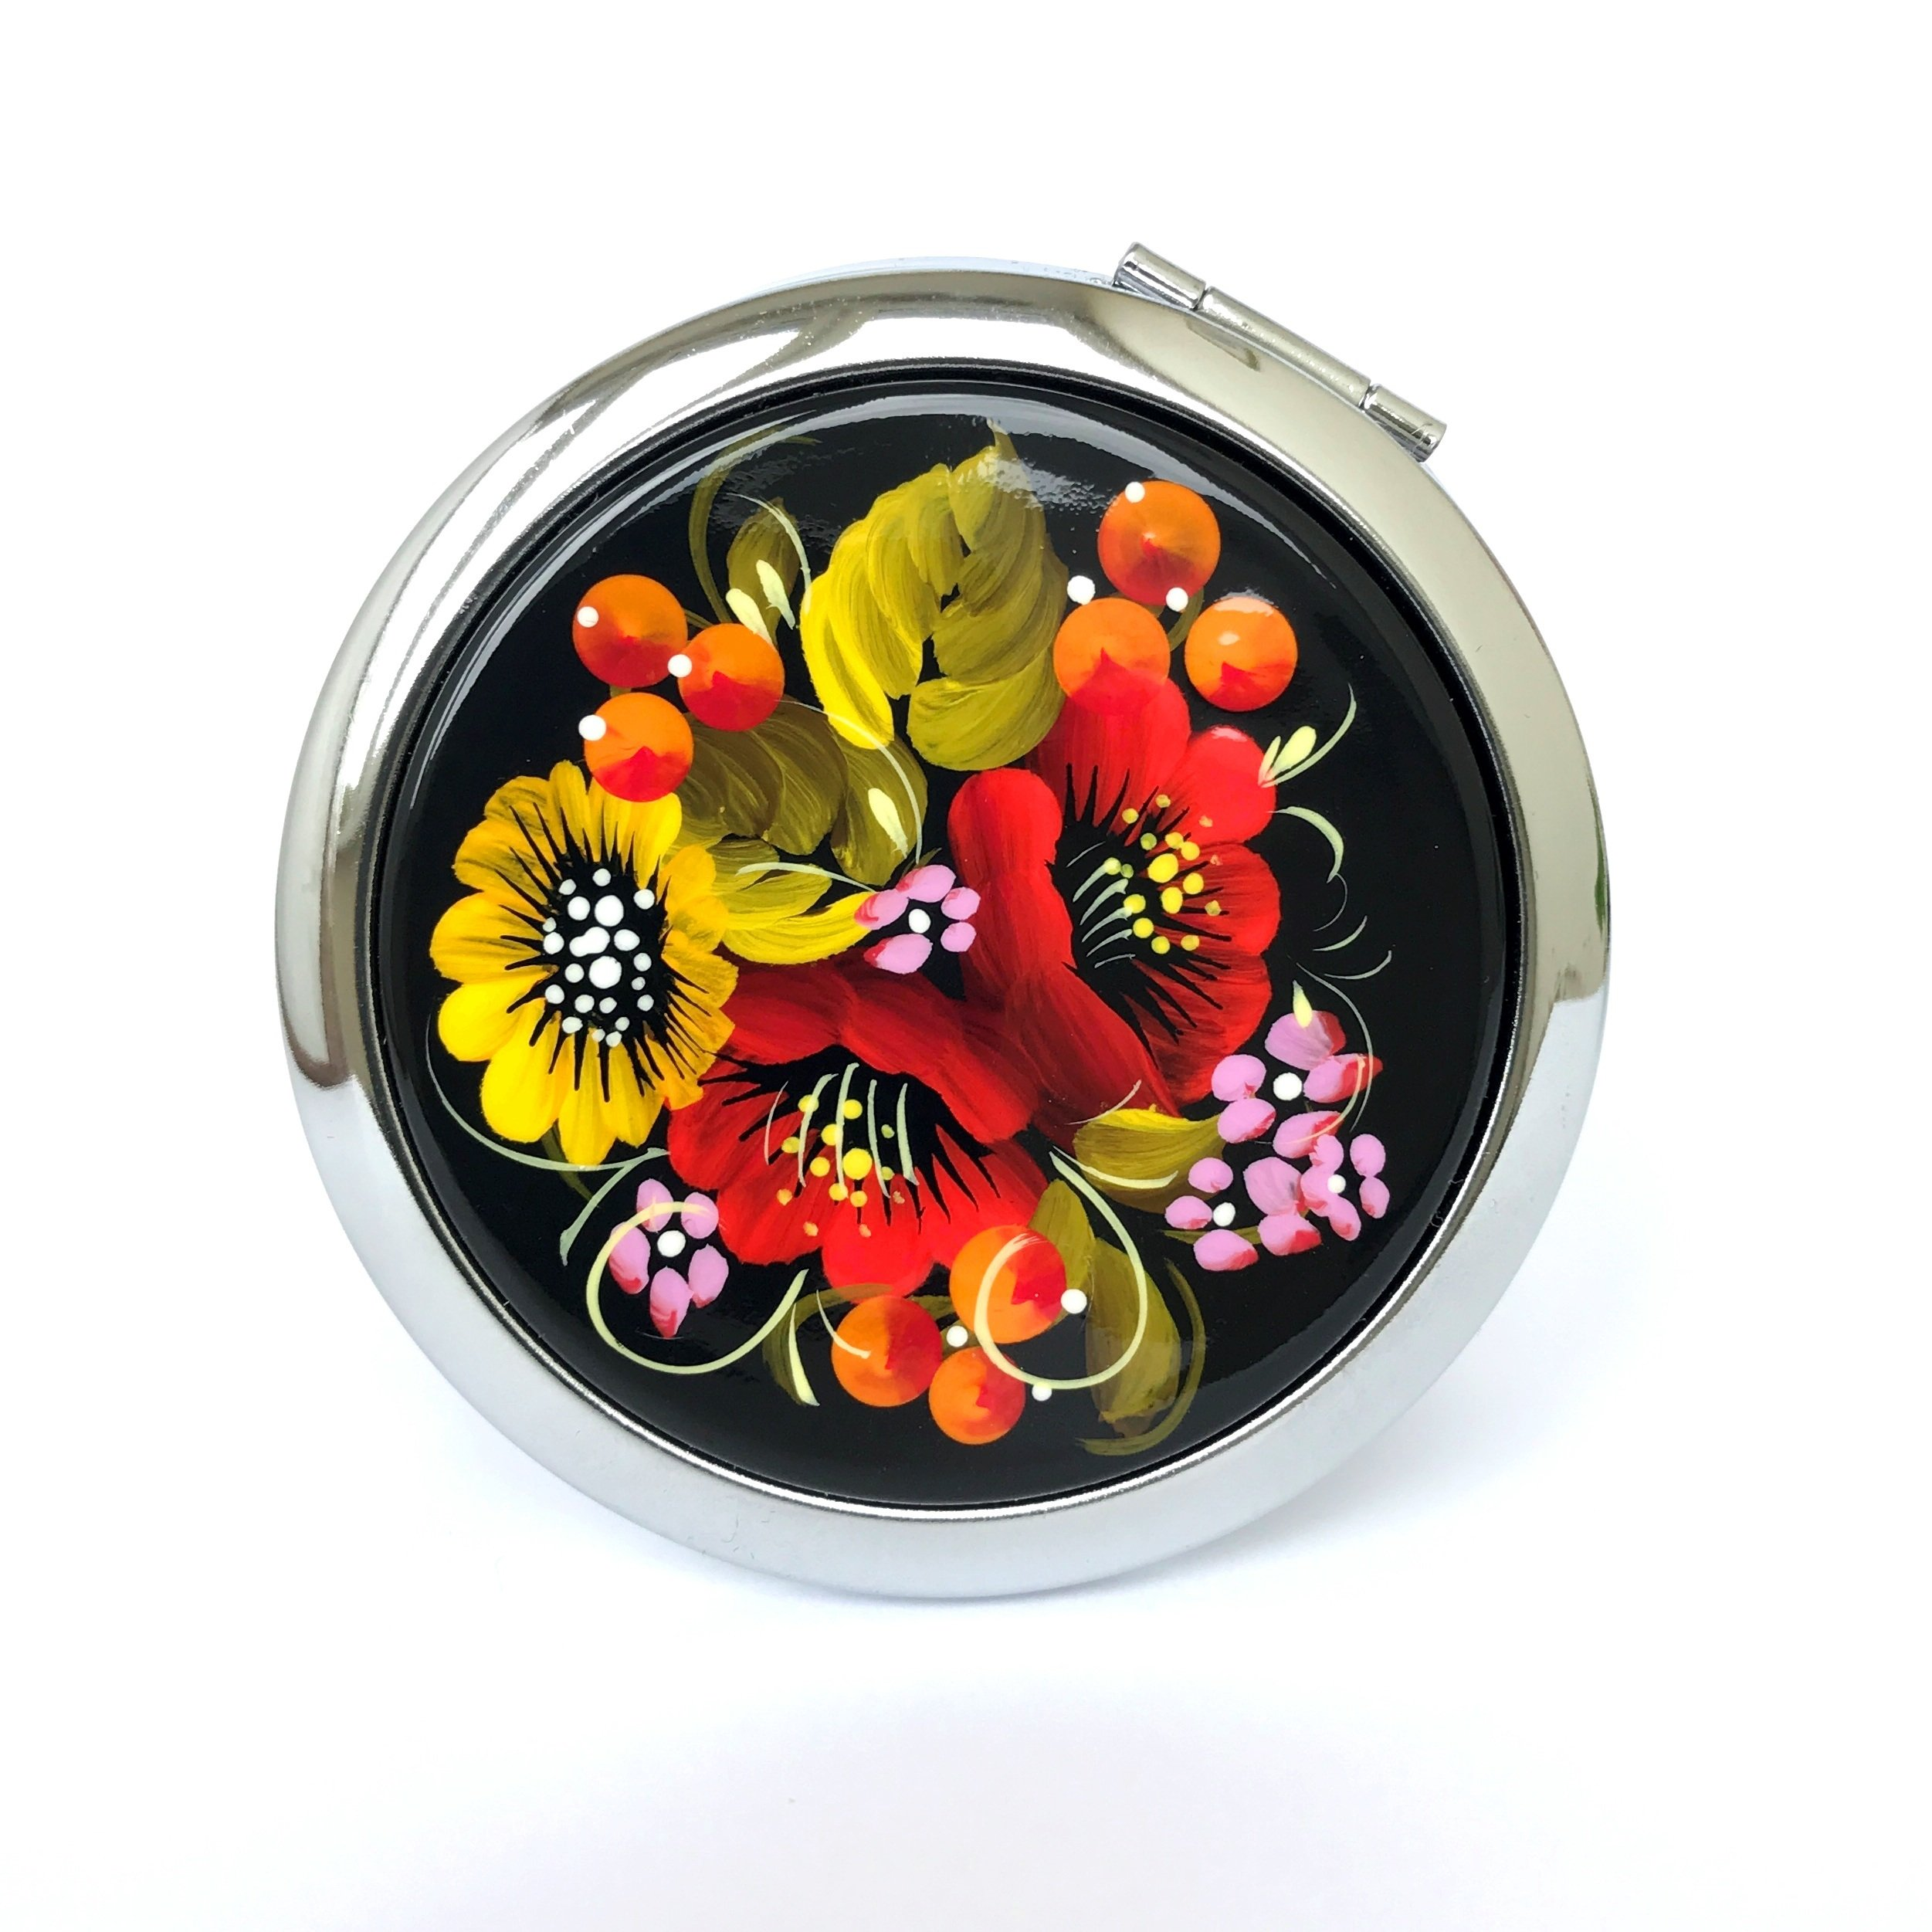 Petrykivka Ethnic Floral Design Hand Painted in Ukraine Round Cosmetic Makeup Double-Sided Pocket Mirror for Purses and Handbags, Small and Unique Gift for Women, Quality Metal and Wood (Red Flowers)